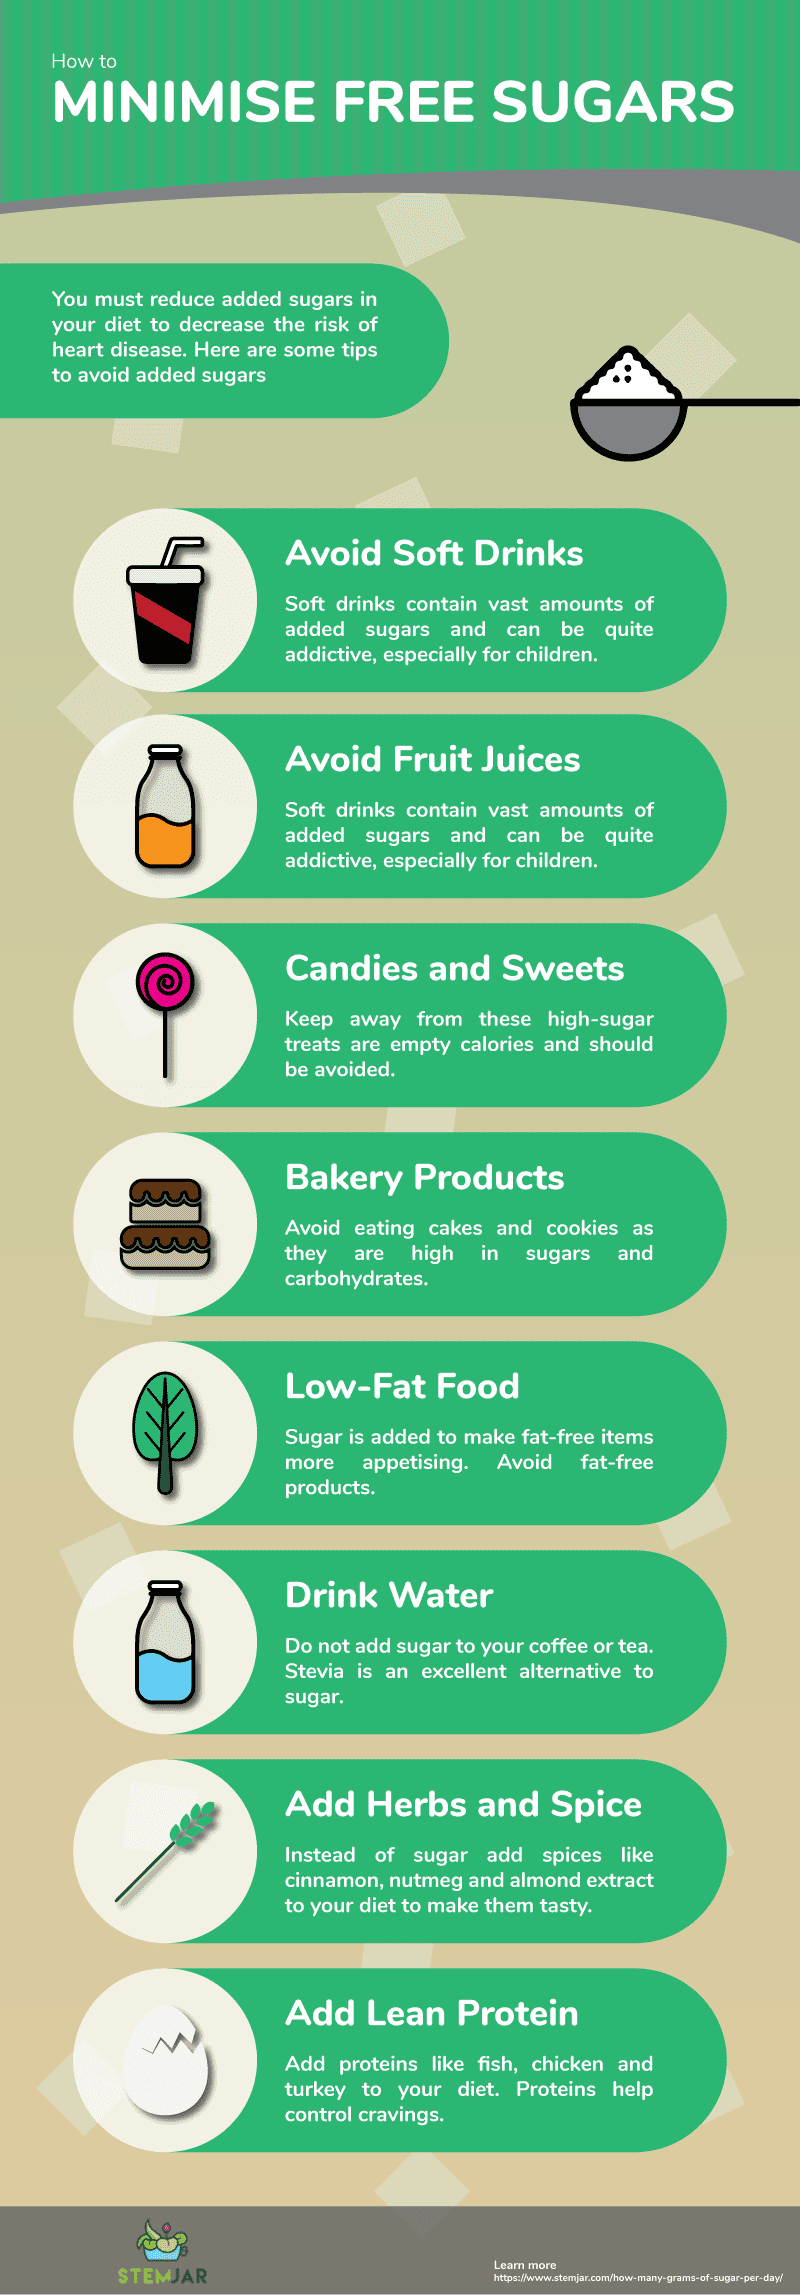 Sugar is naturally found in some food items like vegetables, fruits, etc. However, it is the increased consumption of added sugar or sucrose which is a concern for many. Per AHA, daily sugar intake for men should be 37.5 grams, women should consume 25 grams and children should have between 19 to 24 grams